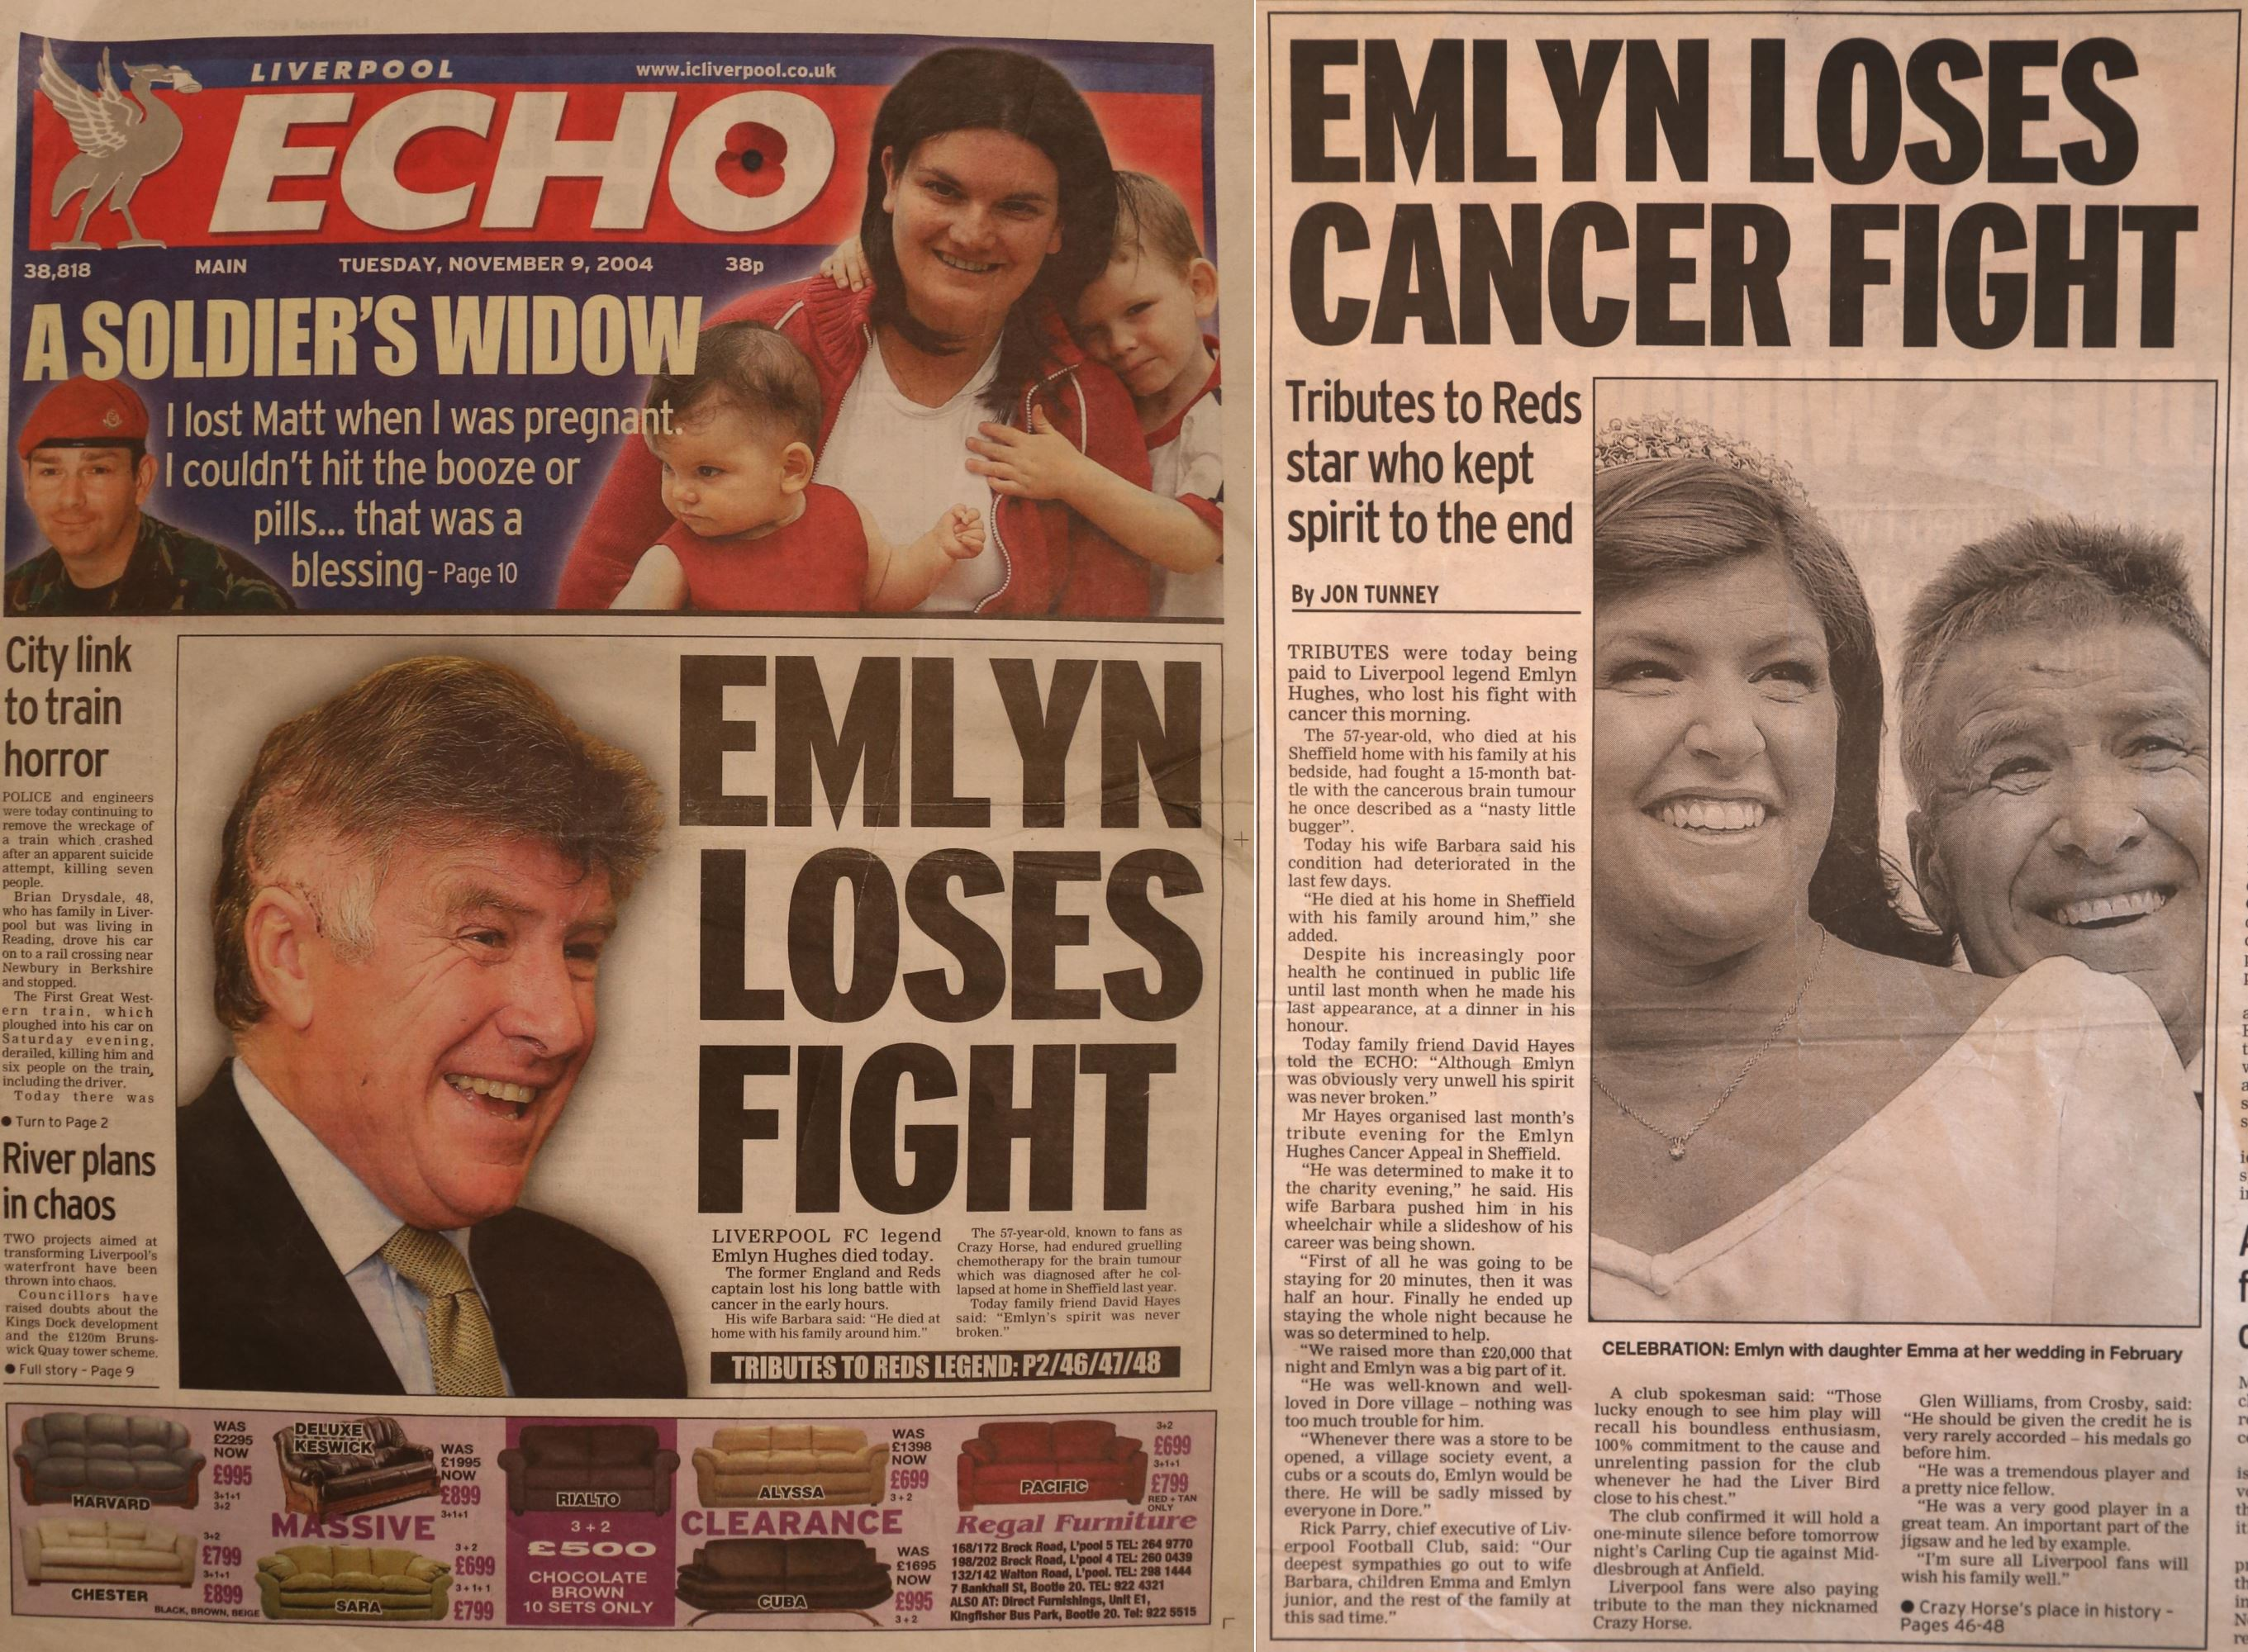 The cover of the Liverpool Echo on 9 November 2004